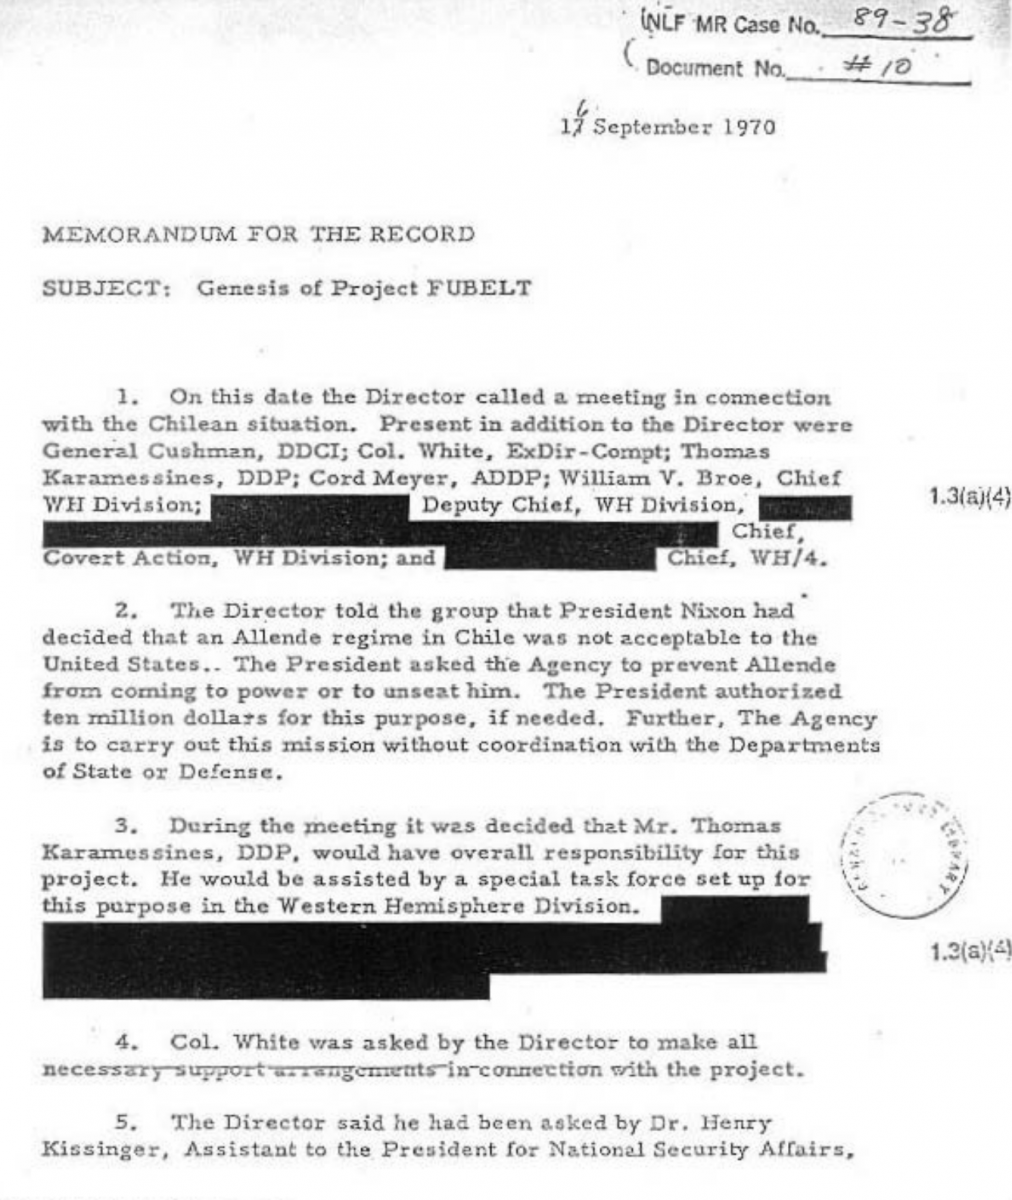 CIA memorandum on Project FUBELT, September 16, 1970.